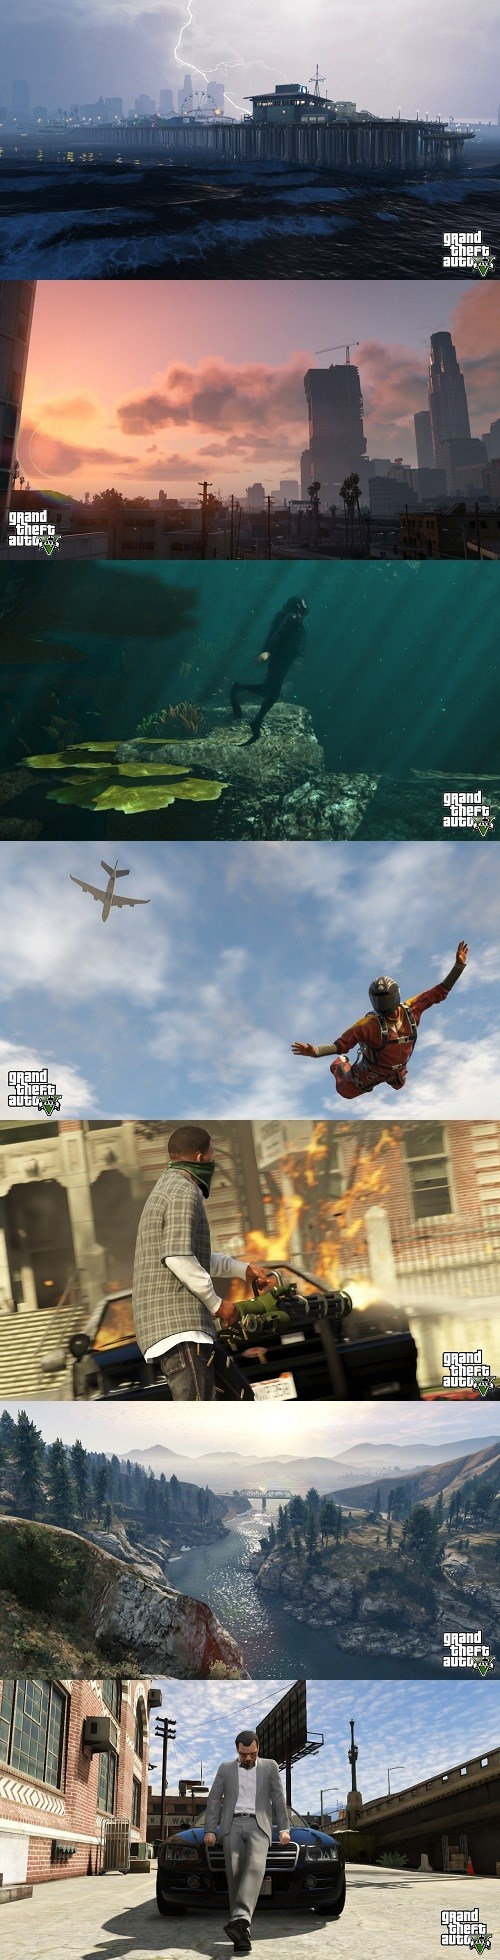 These New Grand Theft Auto V Screens Are Awesome